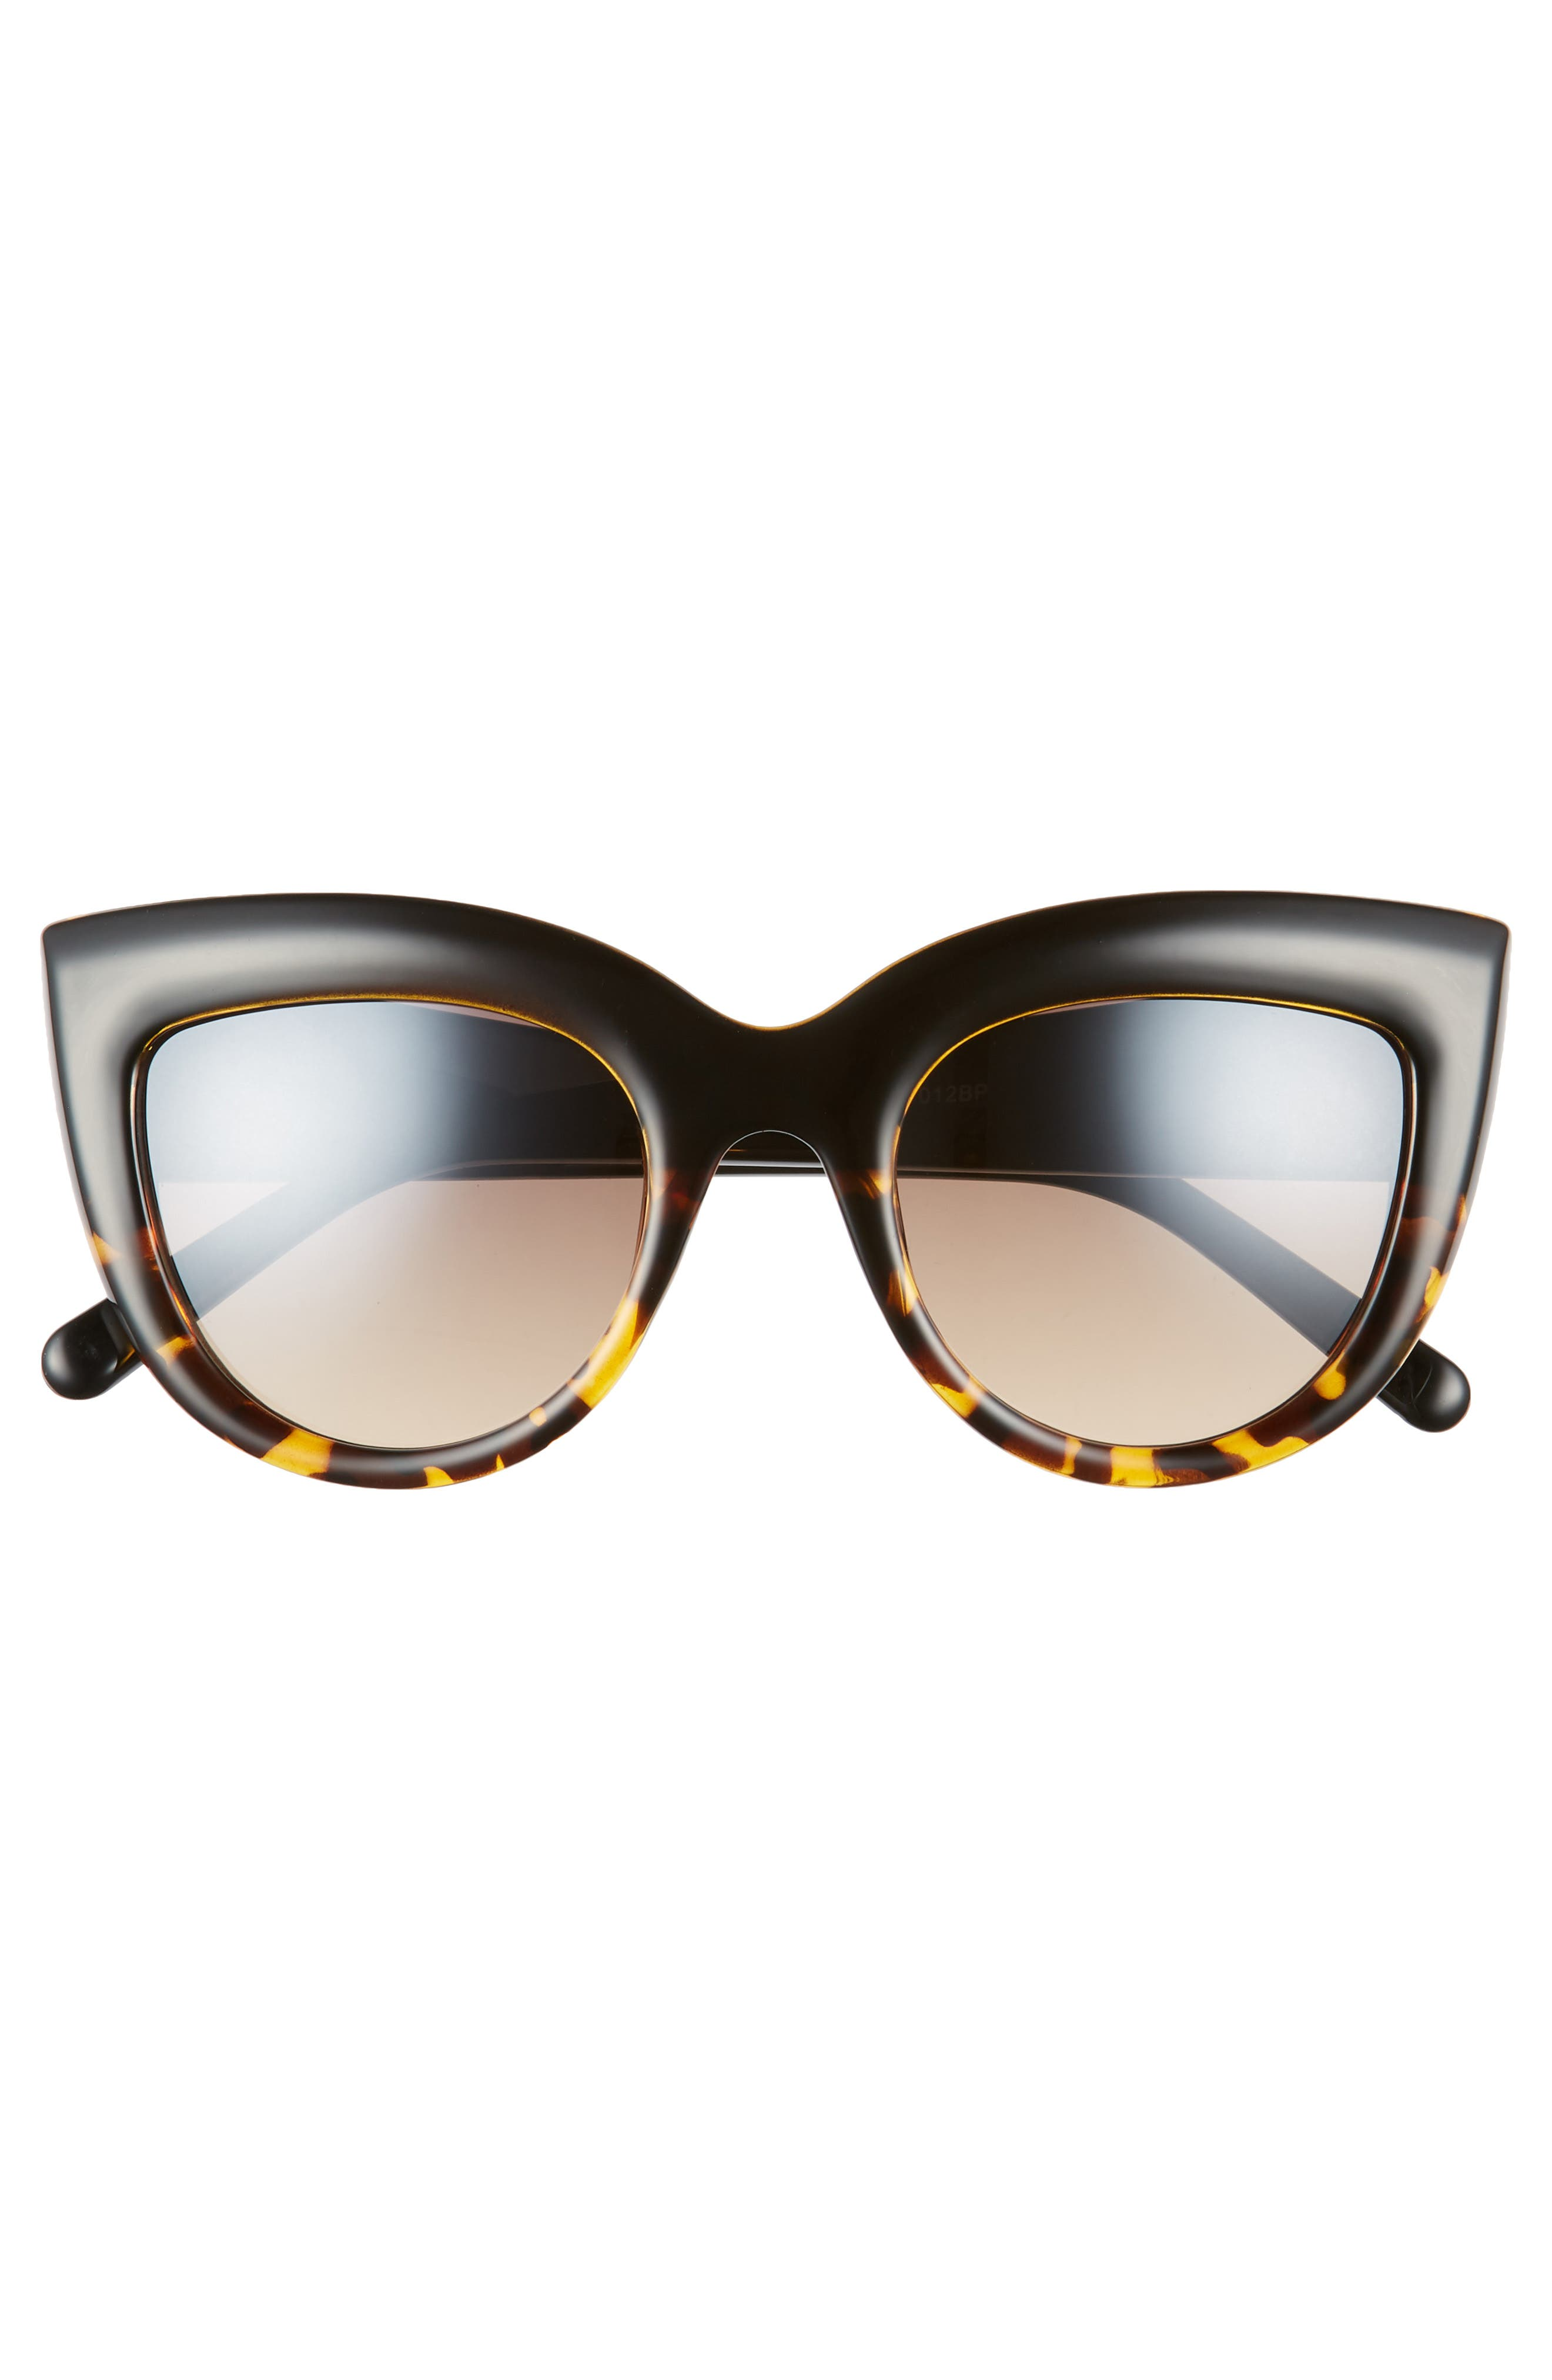 60mm Two-Tone Cat Eye Sunglasses,                             Alternate thumbnail 3, color,